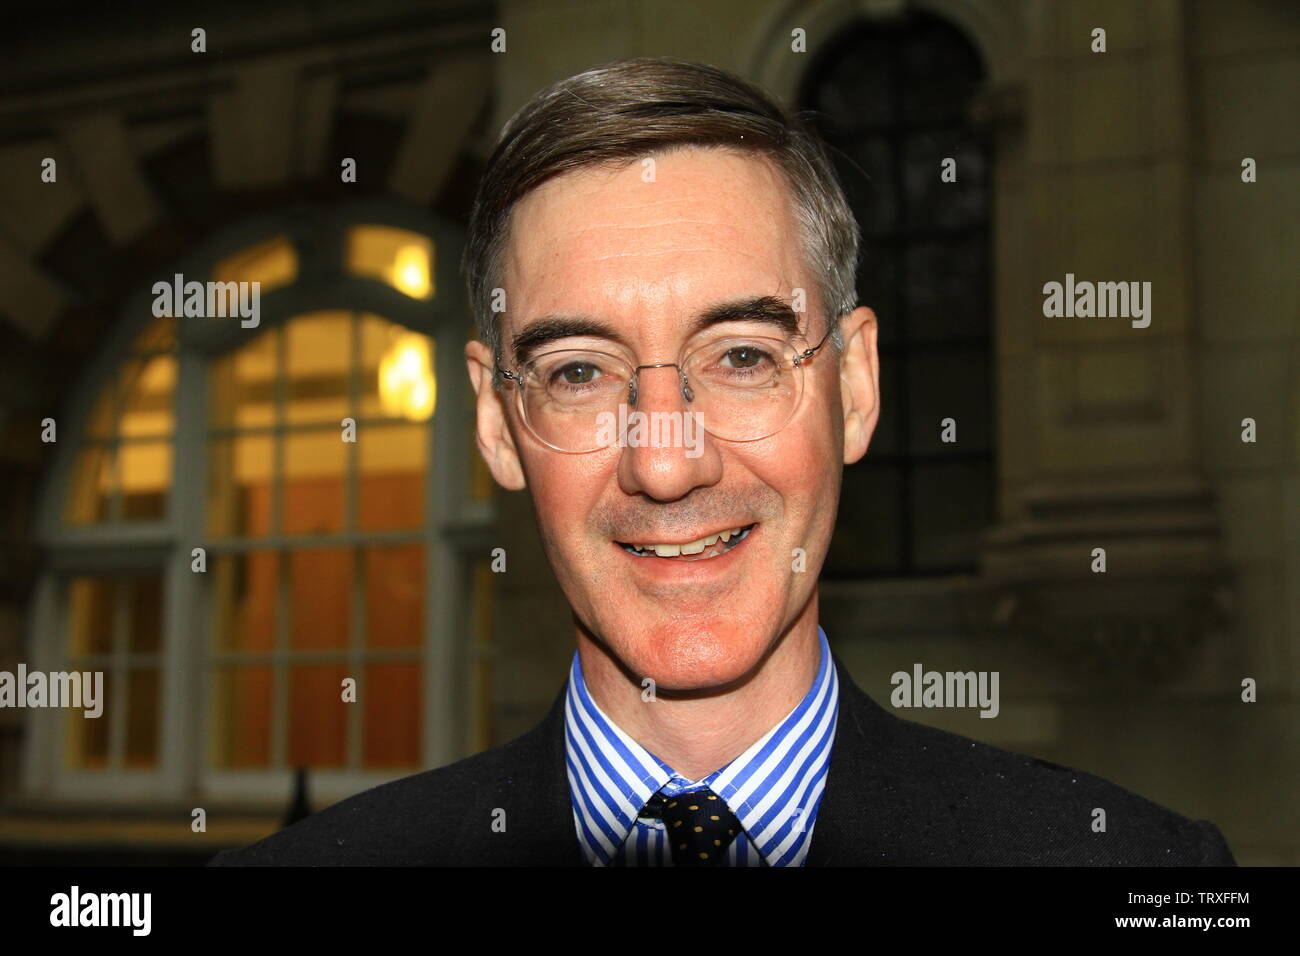 JACOB RES - MOGG MP IN WESTMINSTER, LONDON, UK ON THE 12TH JUNE 2019. MR.REES - MOGG GAVE HIS CONSENT FOR THIS PHOTOGRAPH TO BE TAKEN FOR ALAMY ARCHIVE AND REPORTAGE. Stock Photo